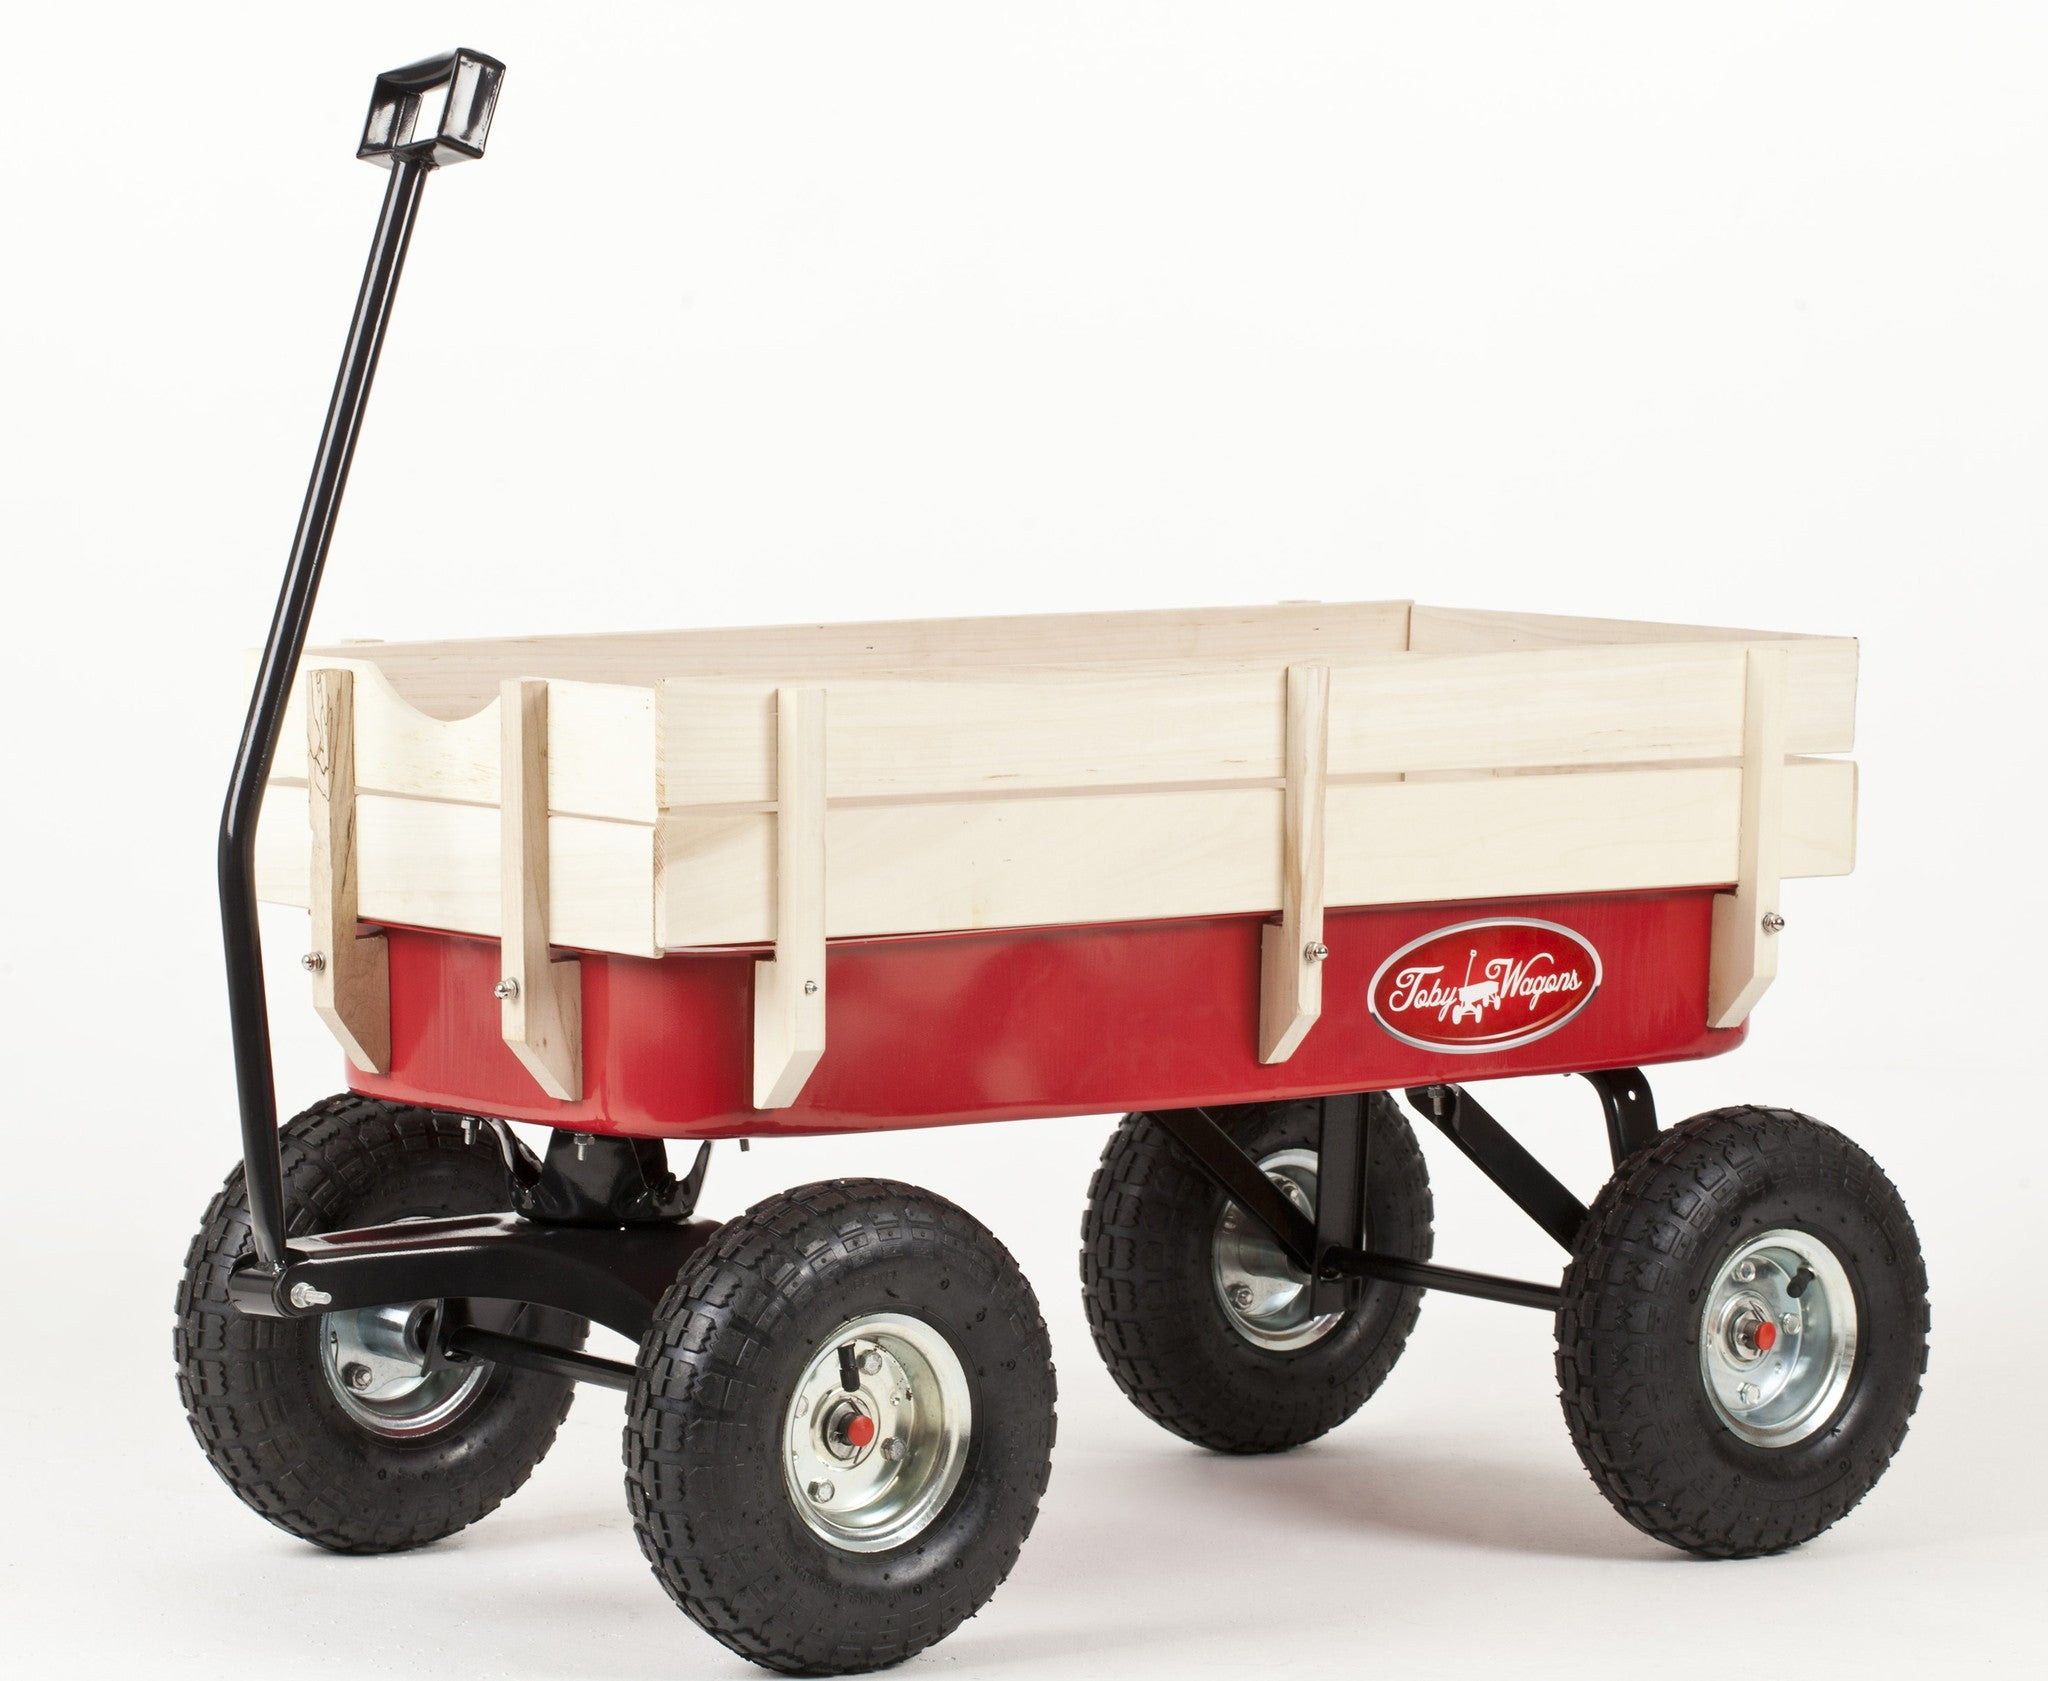 Main view of Retro Toby Wagon (Festival Trolley) for Children at camping festivals and events